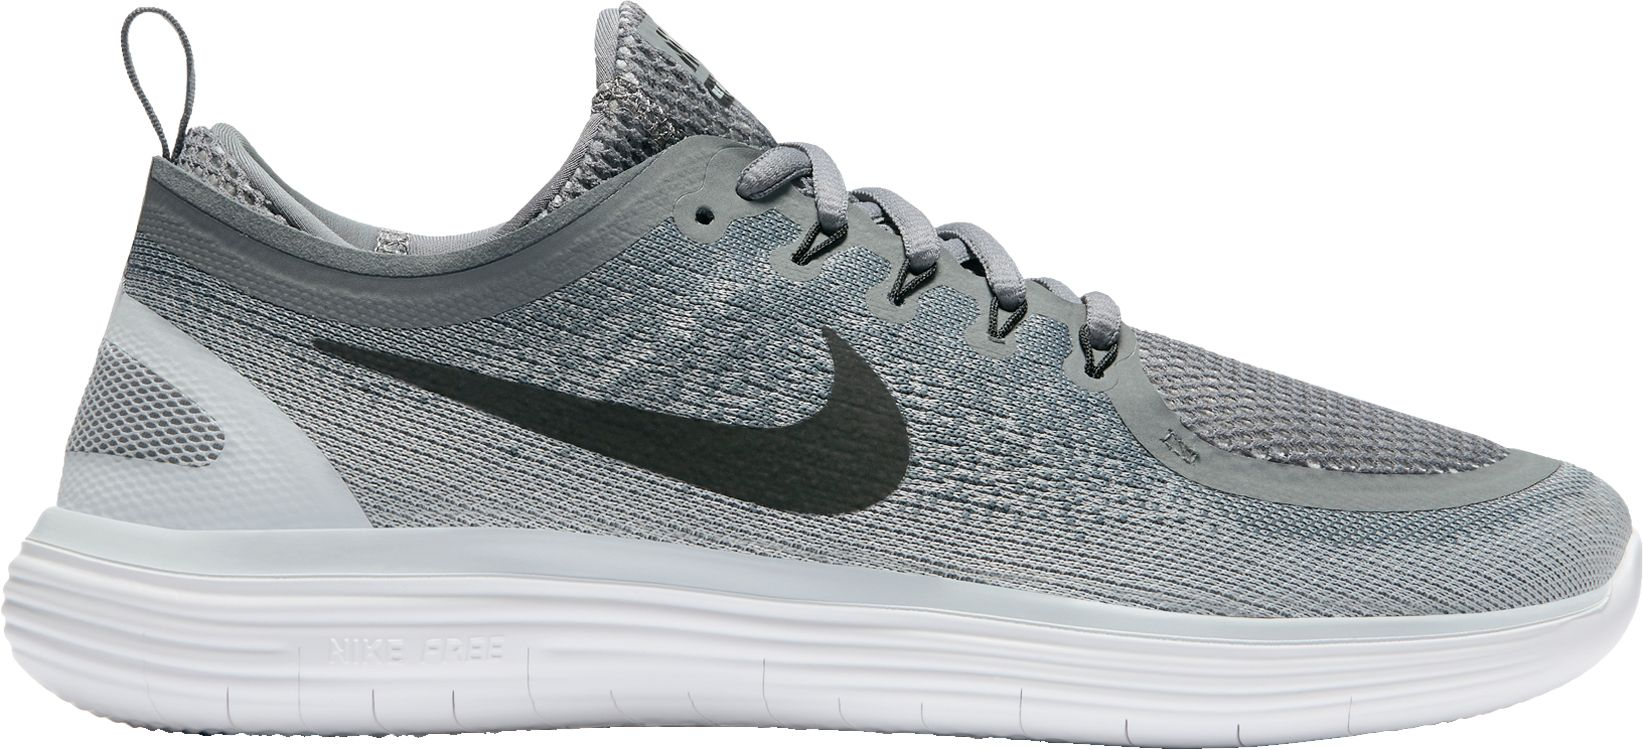 Product Image · Nike Men's Free RN Distance 2 Running Shoes